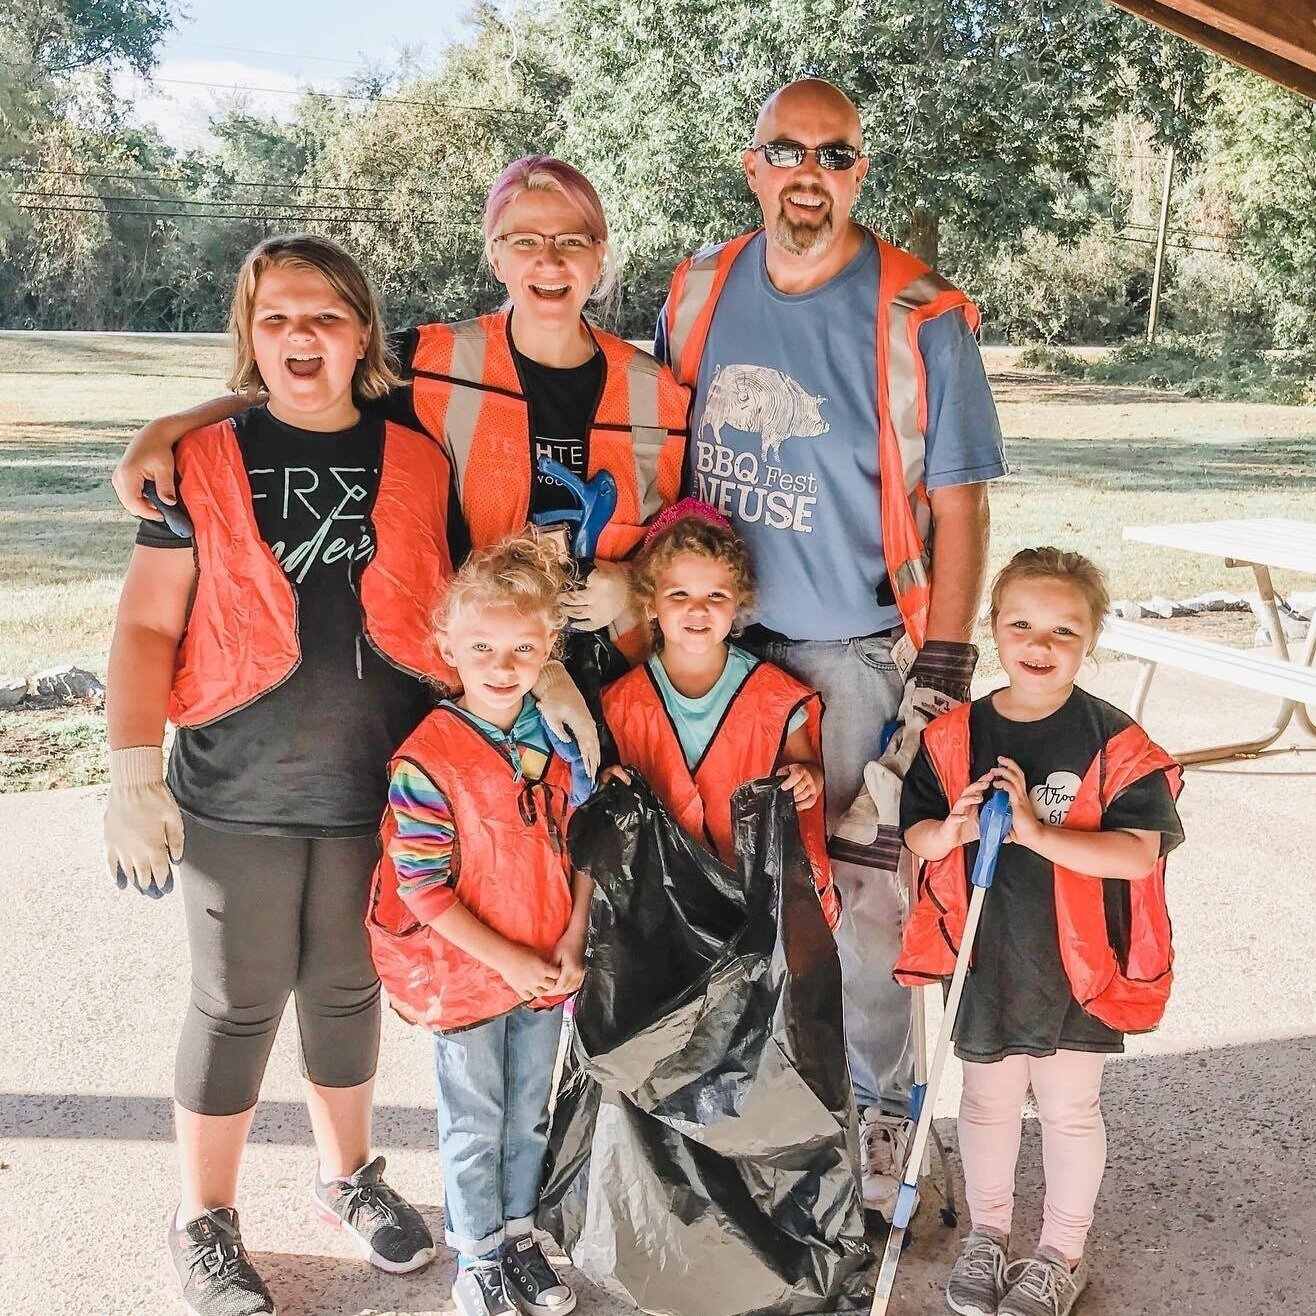 The Towne family along with several Girl Scouts getting ready to the annual fall clean-up event at Neuseway Nature Center. Picture courtesy of Stephanie Towne.